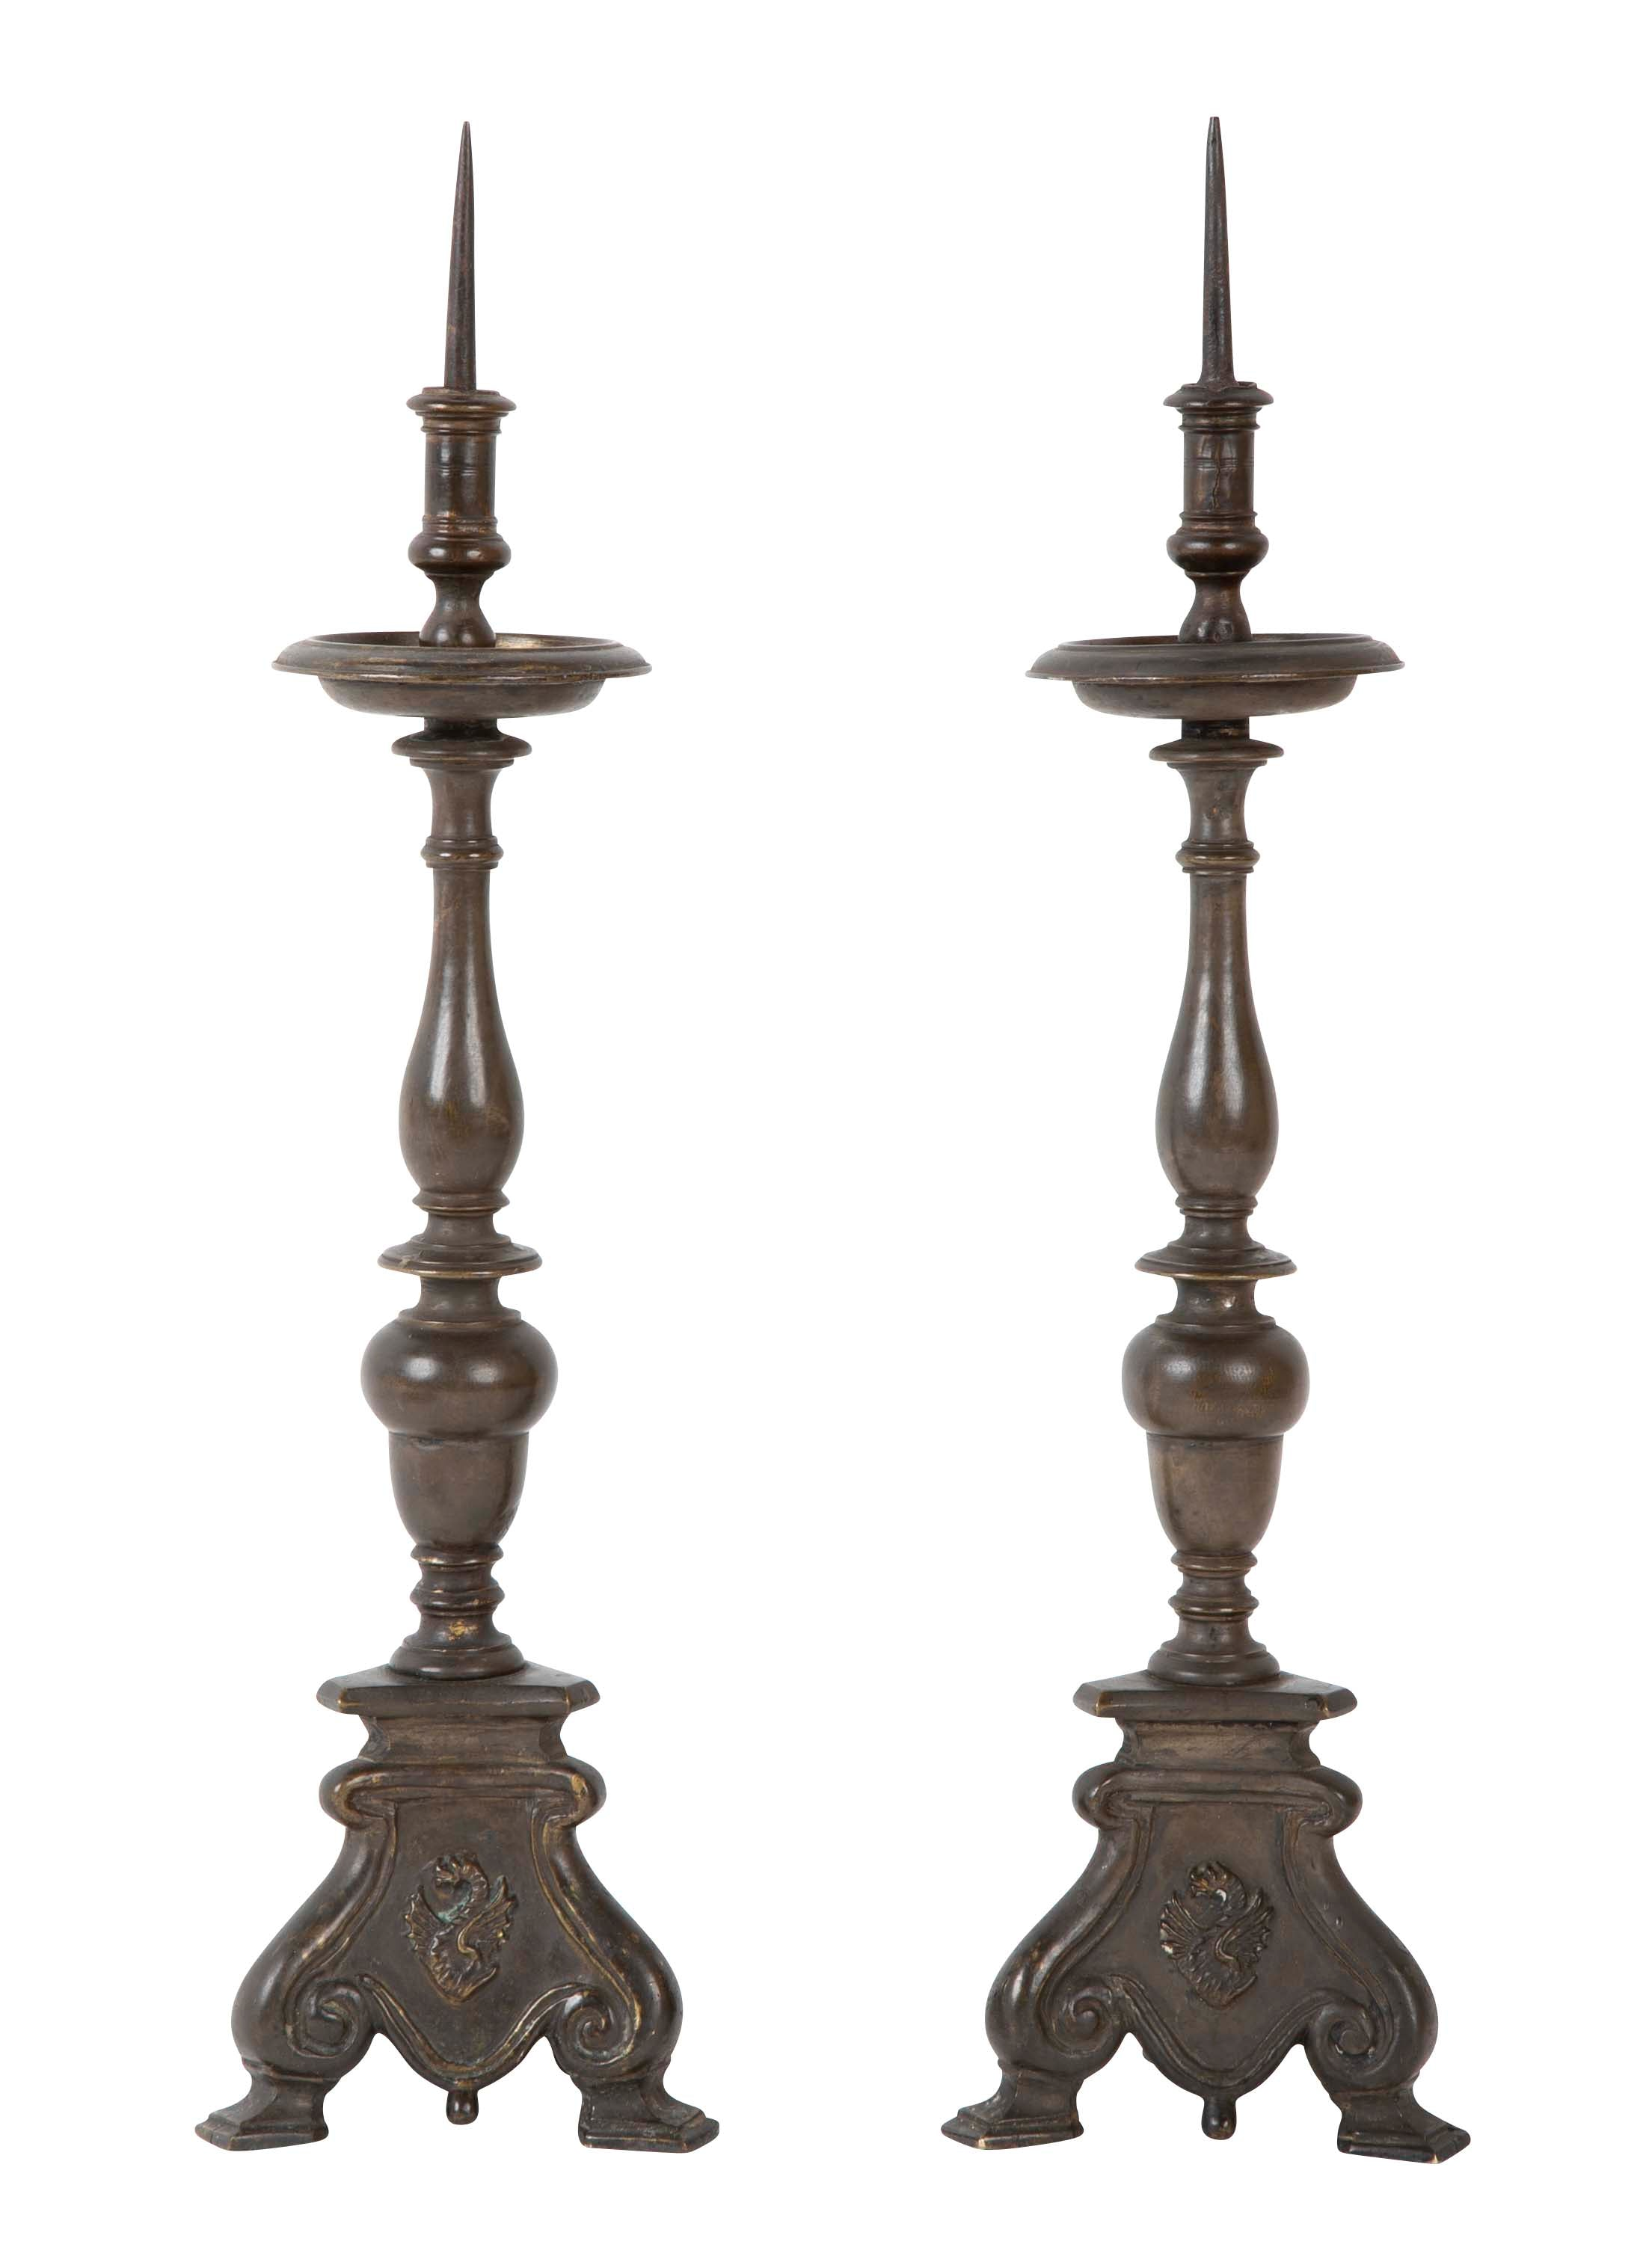 Pair of Italian Bronze Pricket Candlesticks